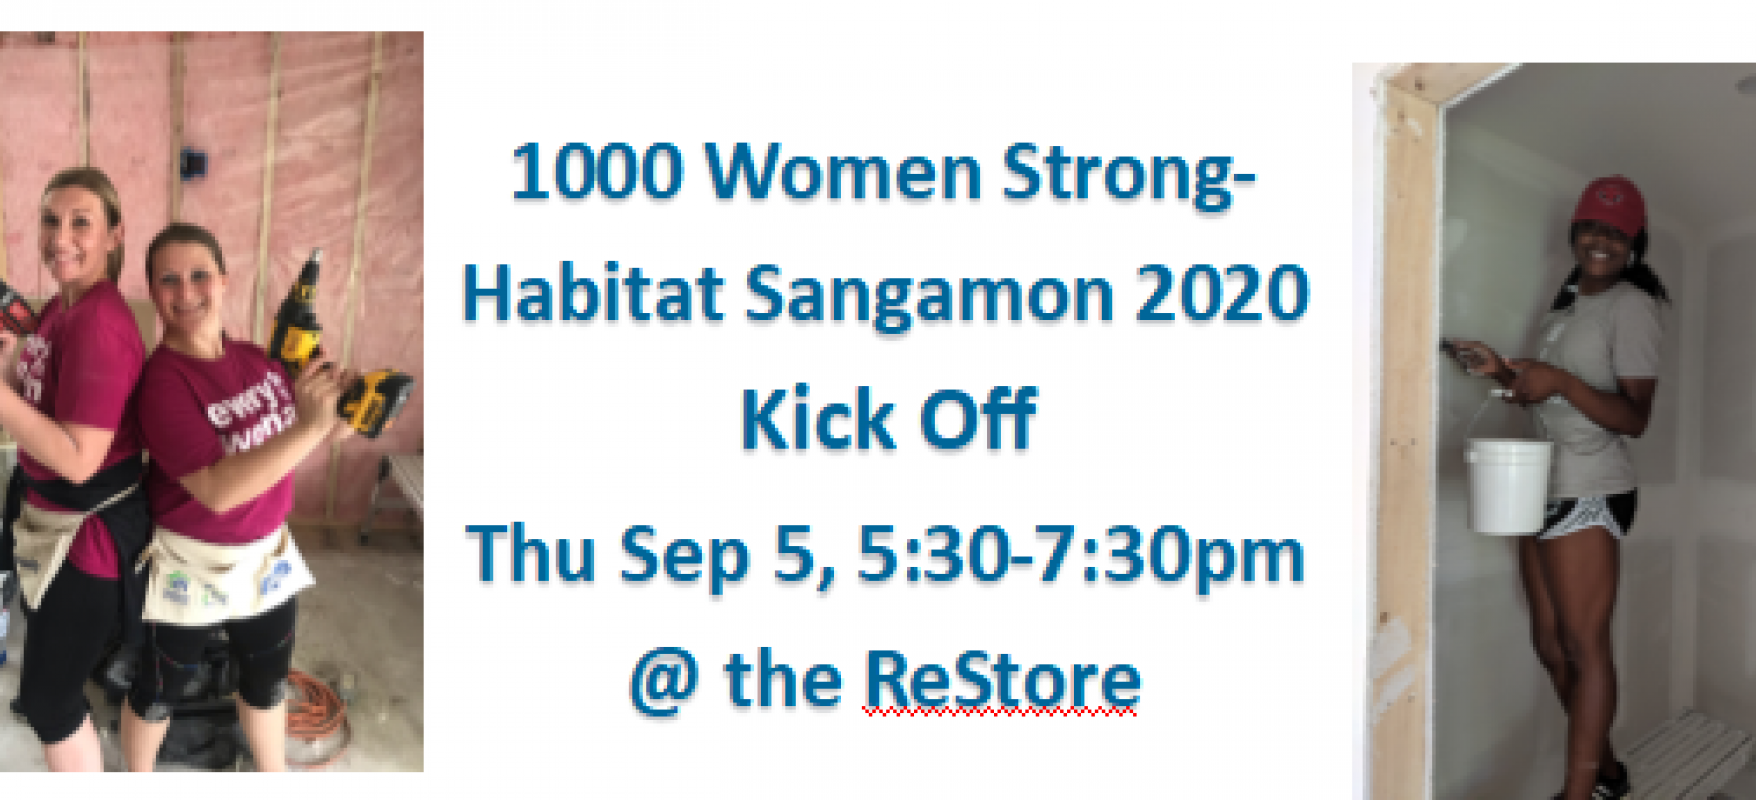 1000 Women Strong-Habitat Sangamon